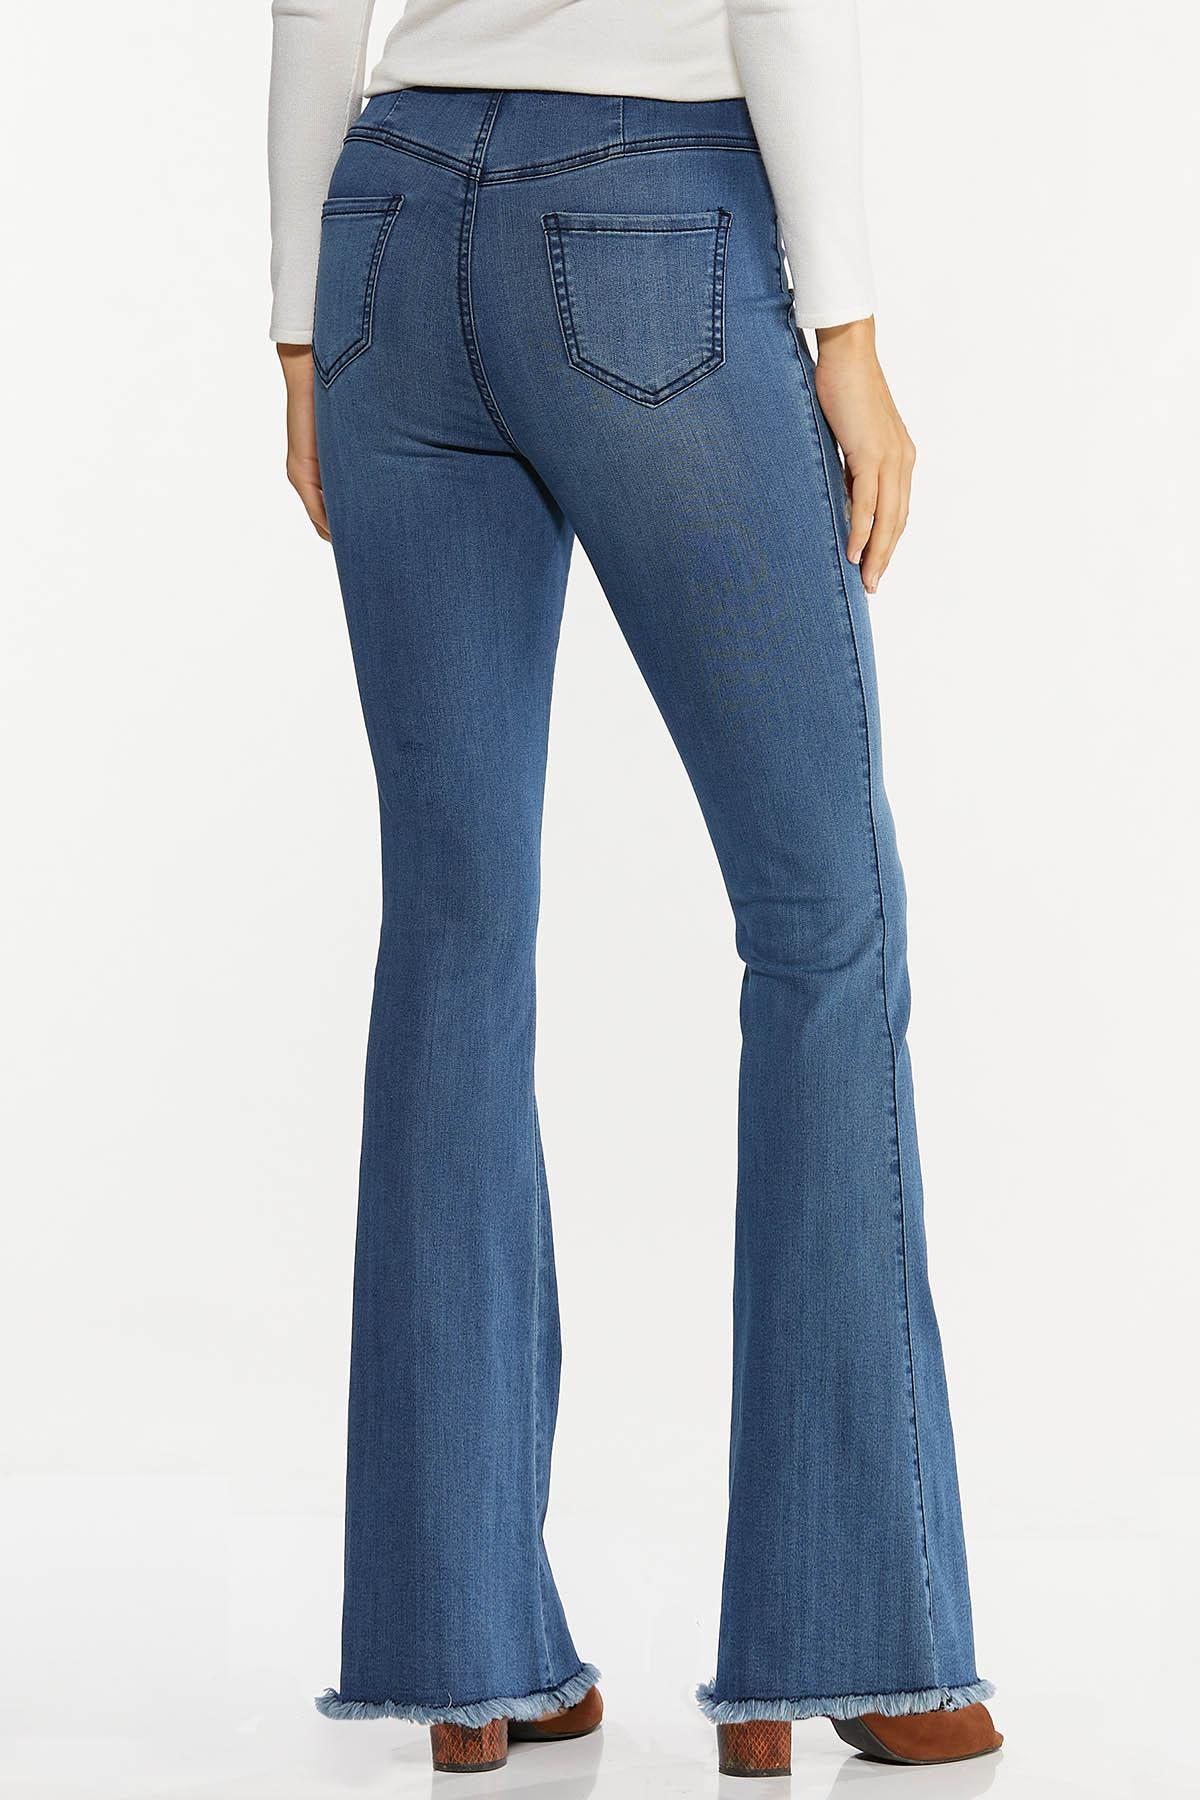 Floral Embroidered Flare Jeans (Item #44662704)